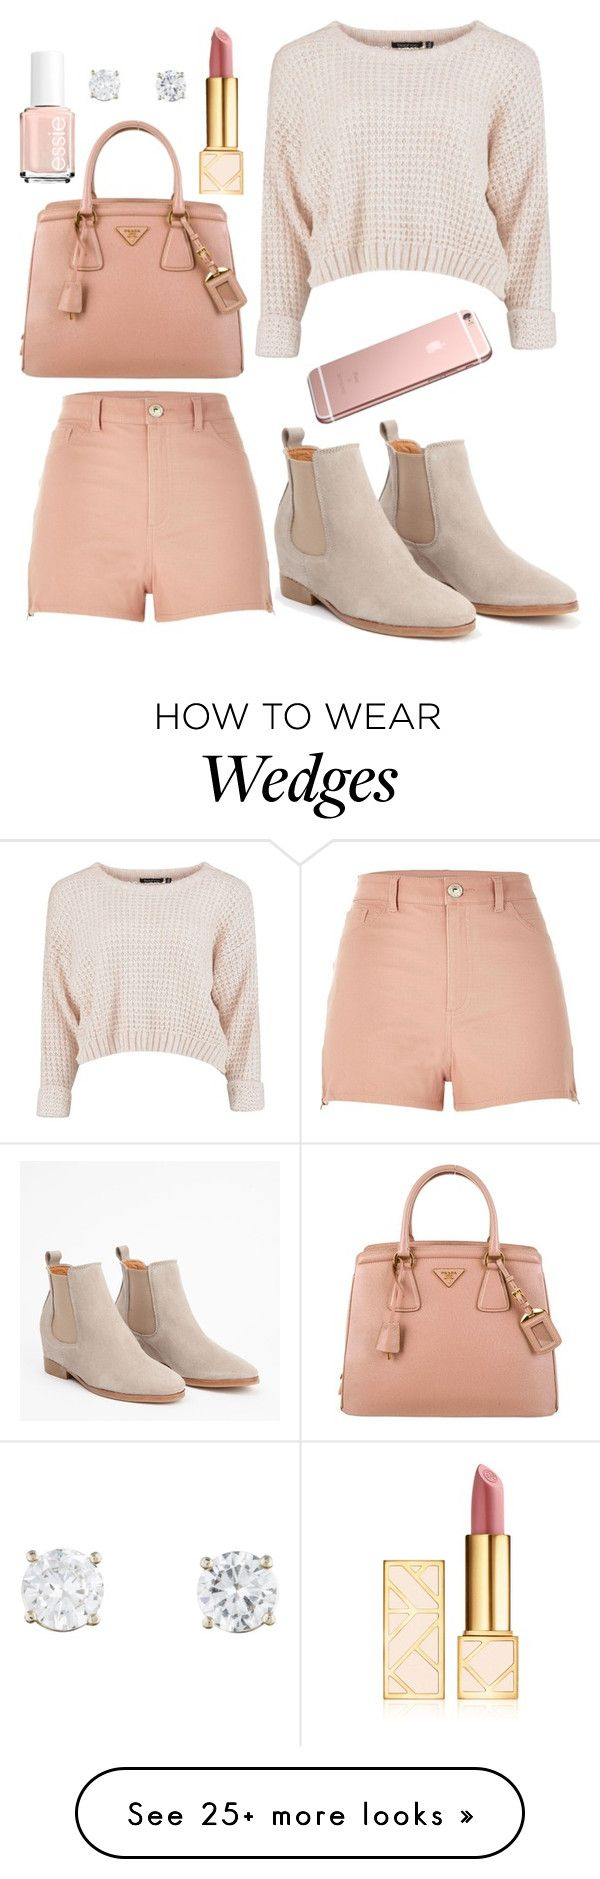 """Rose gold"" by janeanderson6203 on Polyvore featuring River Island, Prada, Tory Burch and Essie"